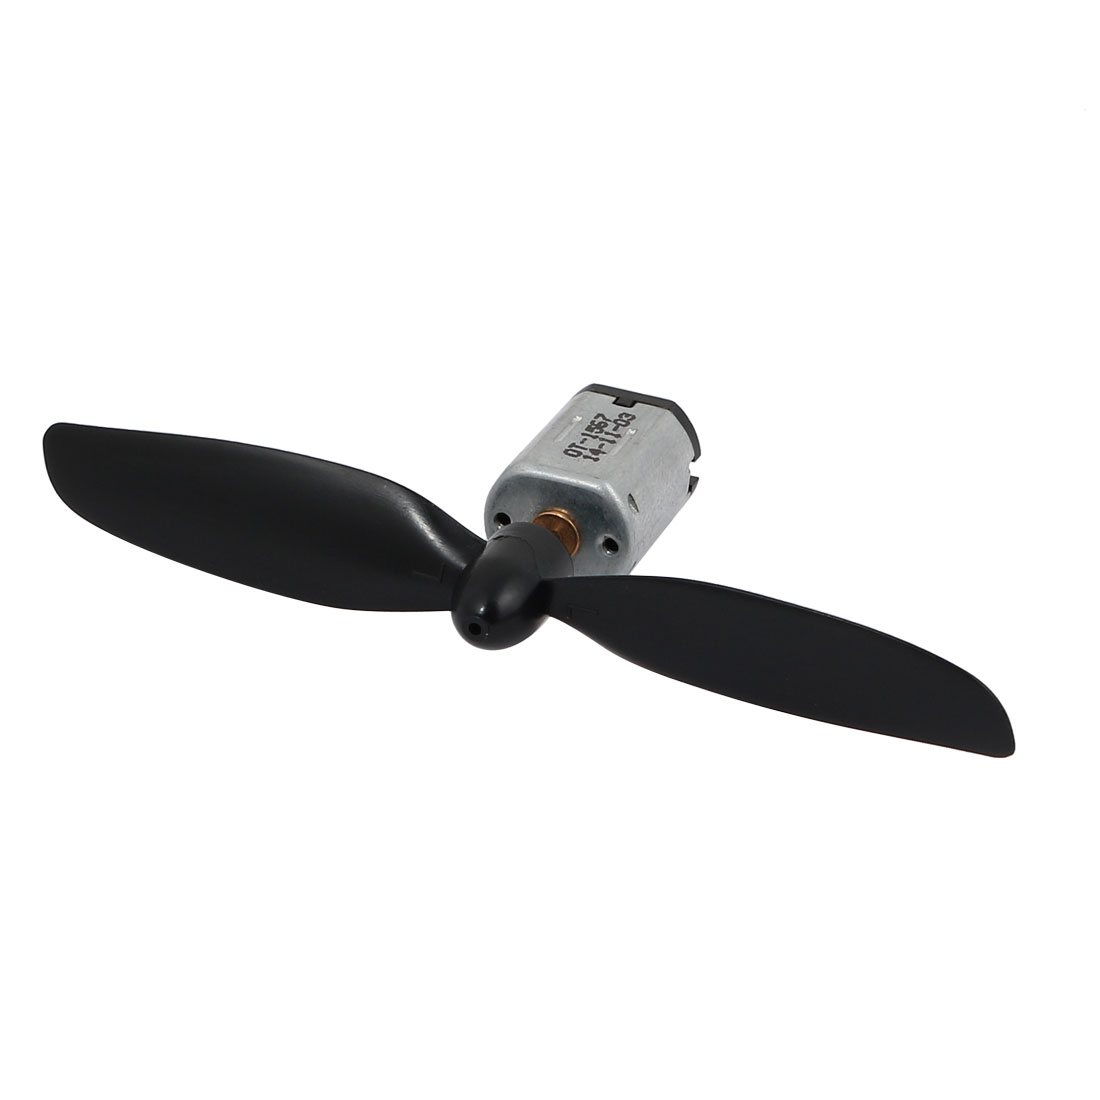 DC 3V 21000RPM N20 High Speed Strong Magnetic Motor w Helicopter CCW Propeller